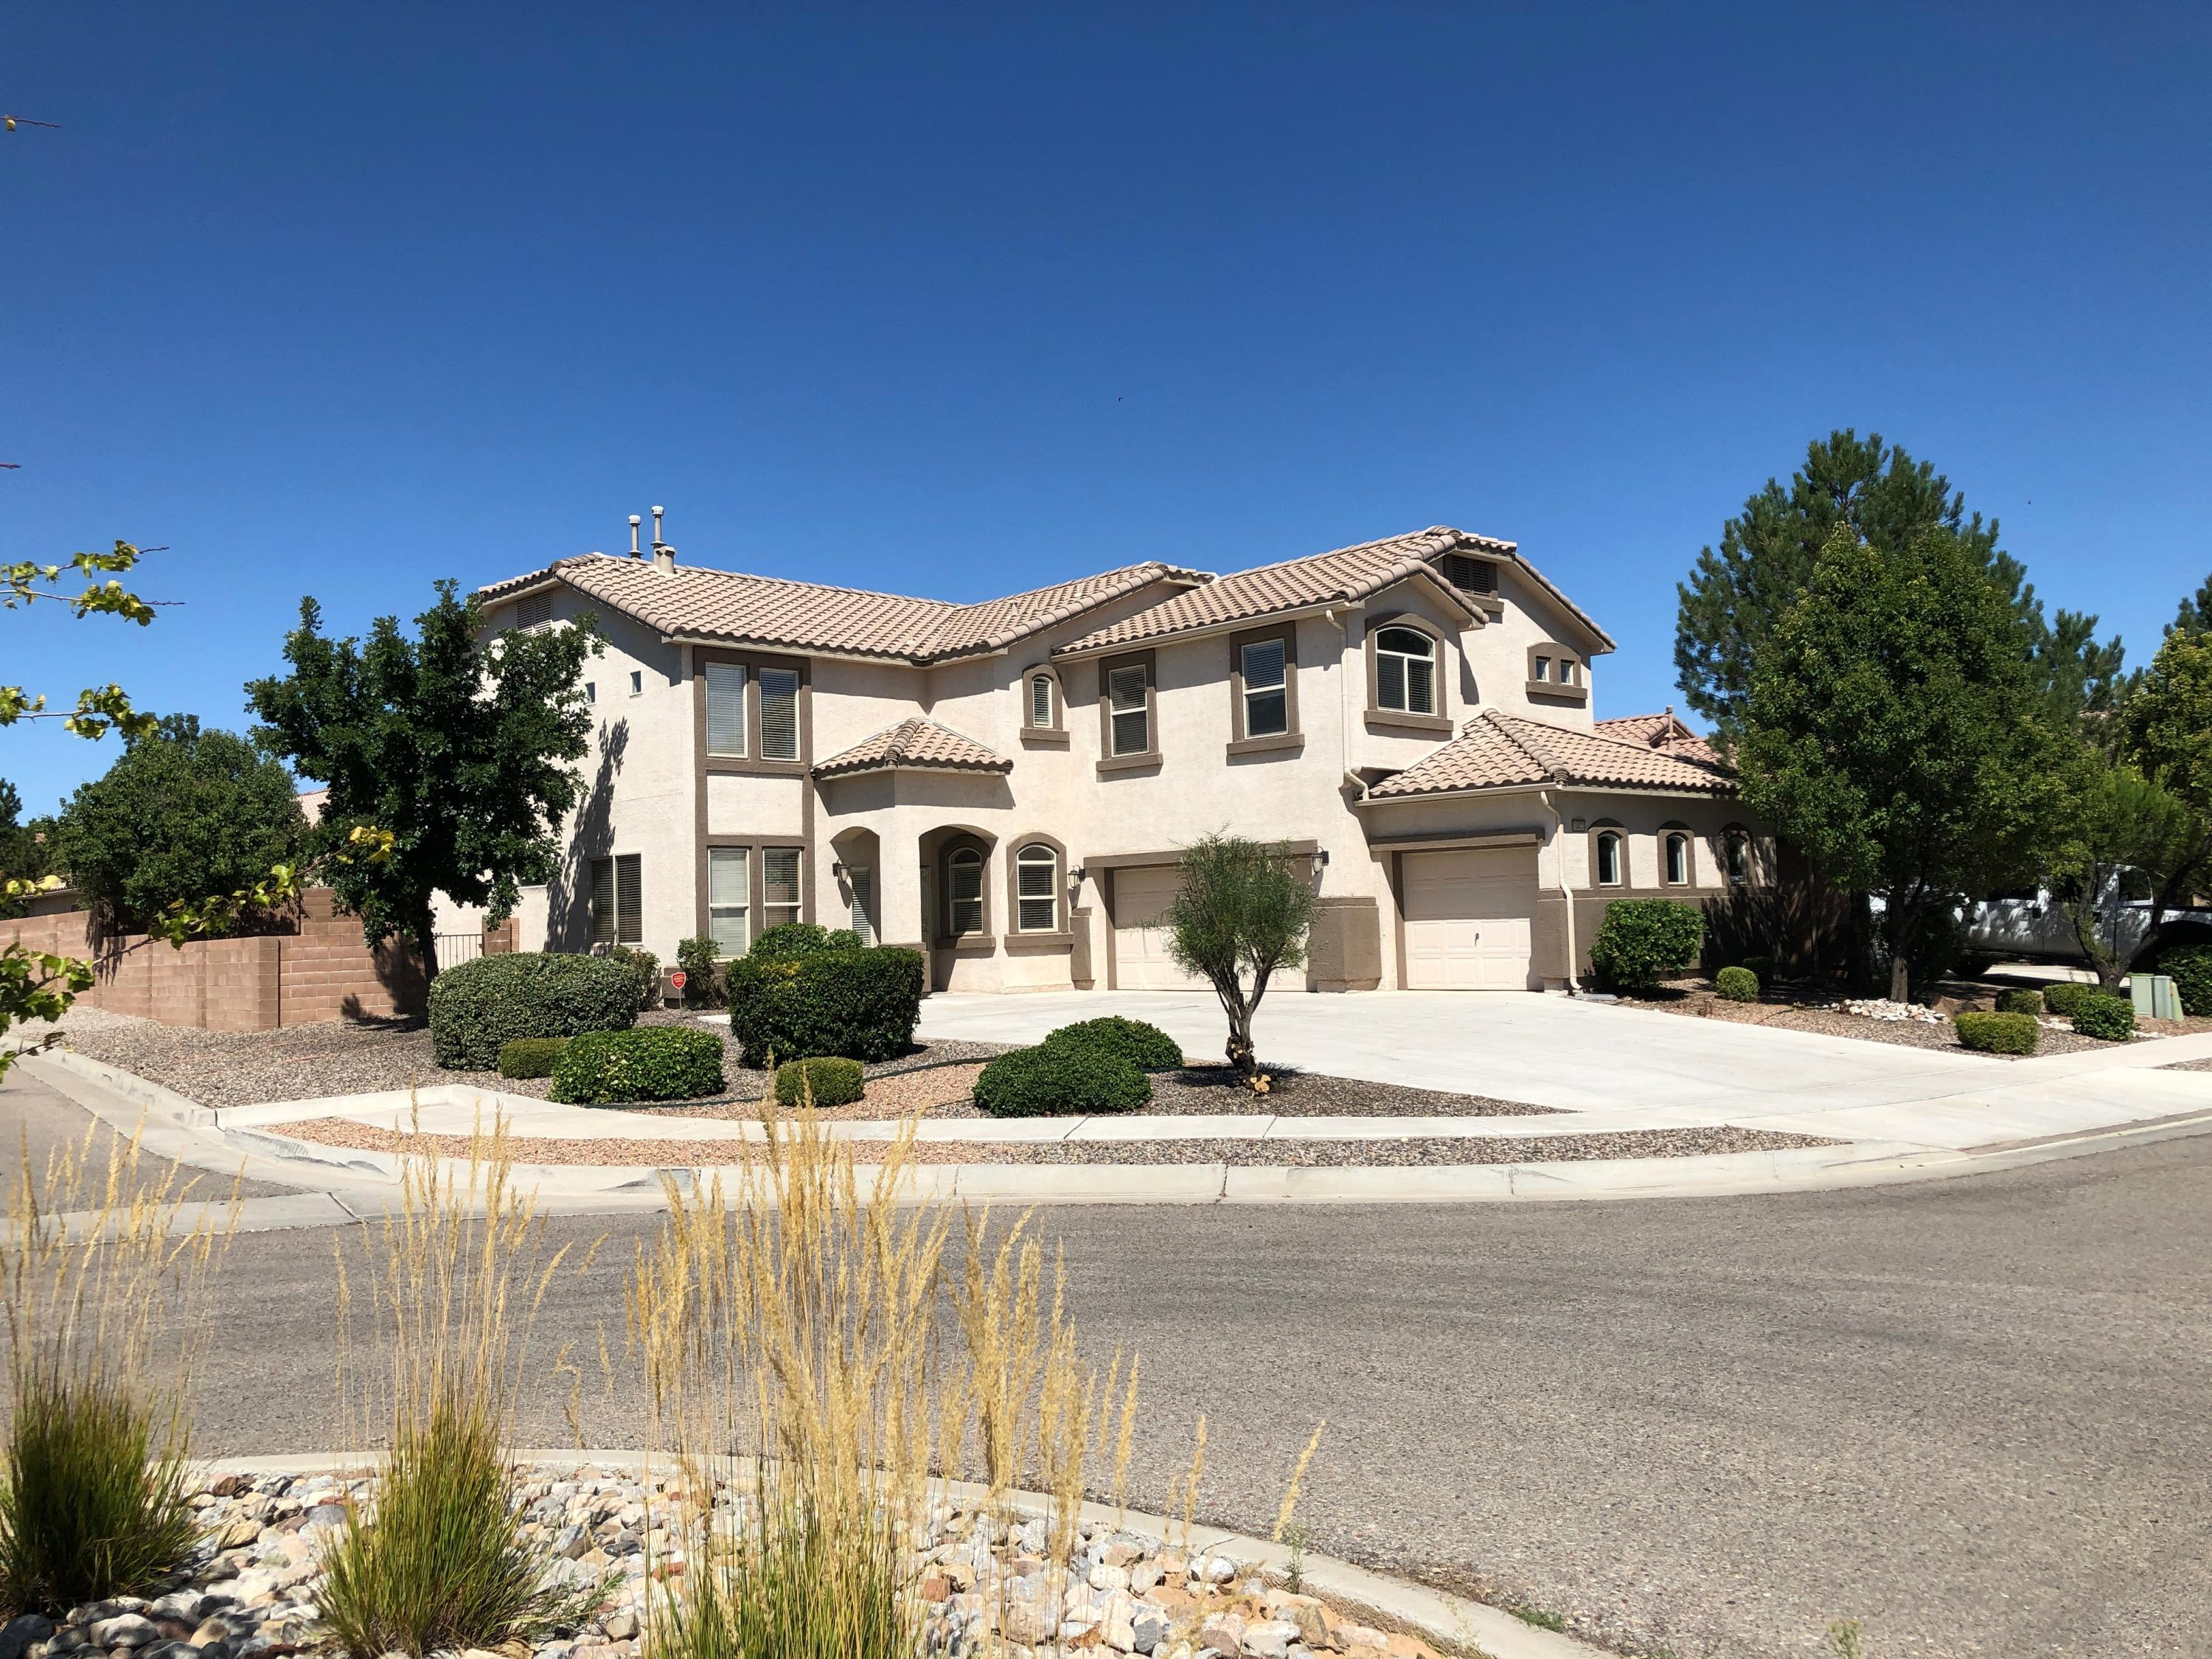 Come take a look at this spacious 5 bedroom 3 bathroom home located on a corner lot. Home has walk in closets, large spacious master bedroom,granite countertops, pergo style floors downstairs and tile in the kitchen. This is a must see.